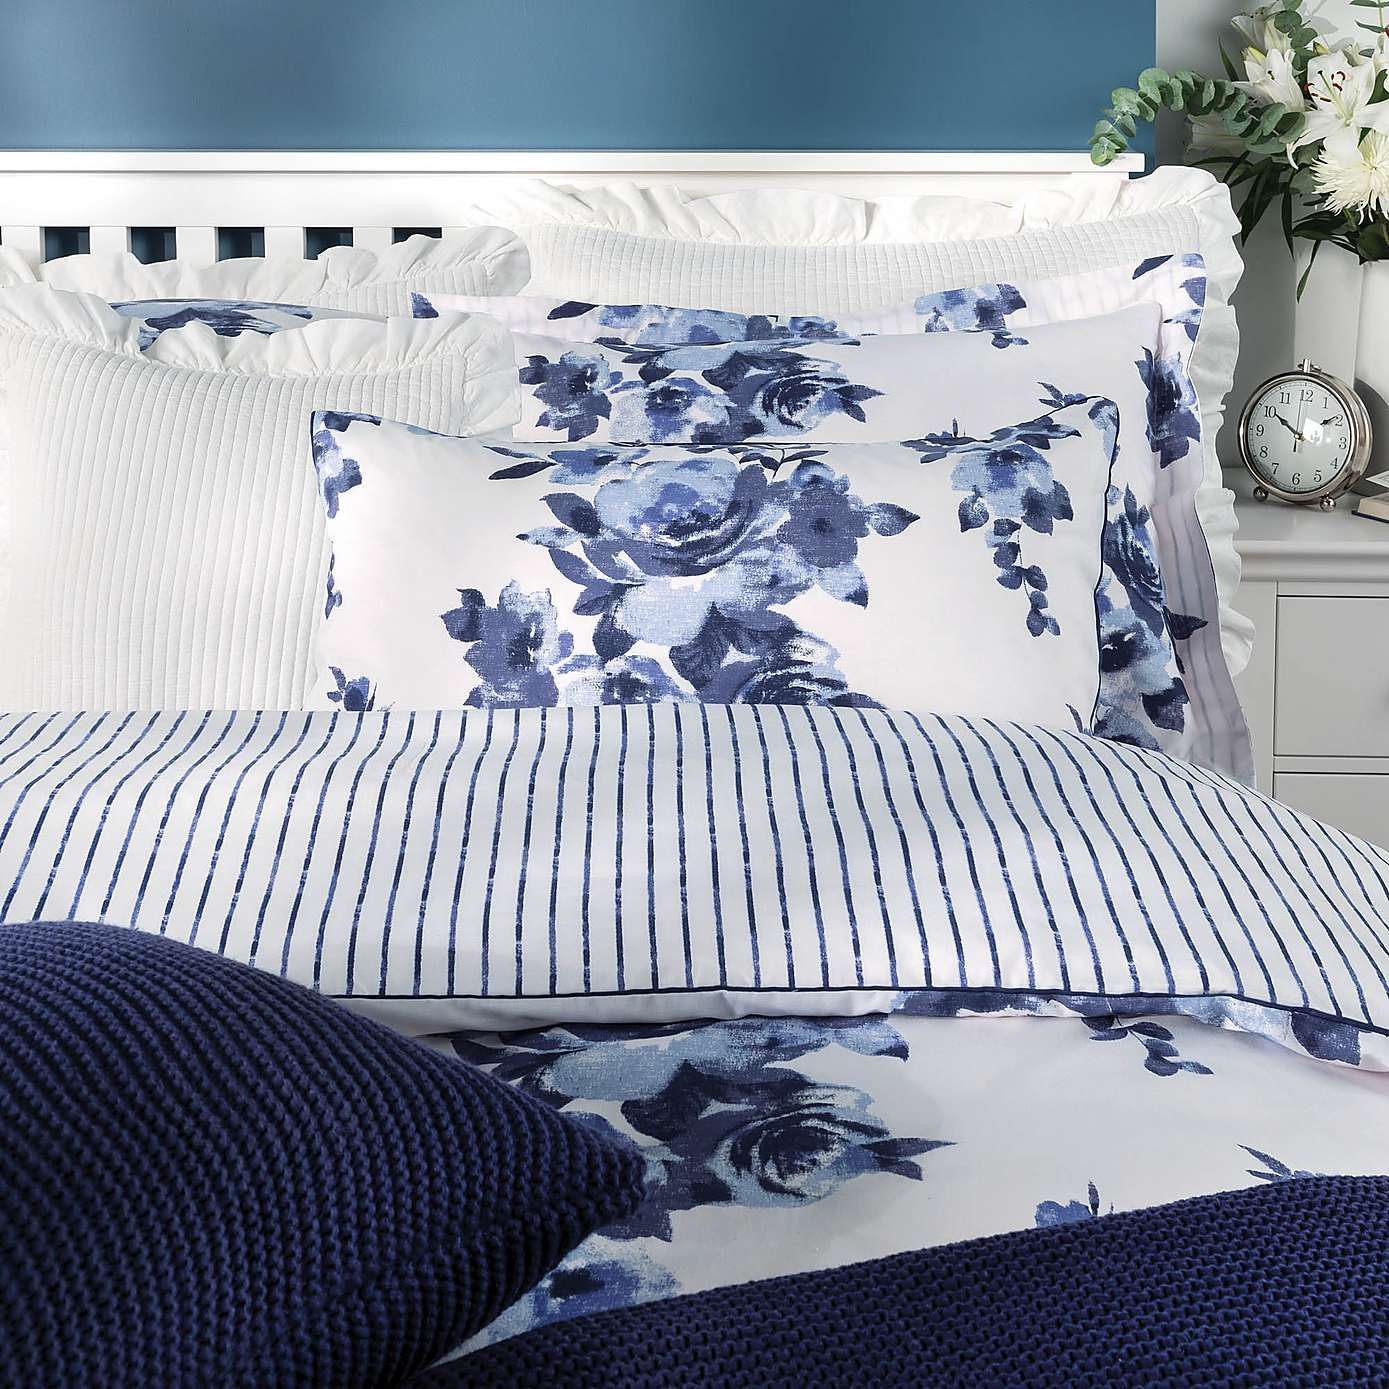 Saria Floral Blue Bed Linen Collection Dunelm Blue Bedding Sets Blue Bedding Blue Linen Bedding Blue and white duvet covers